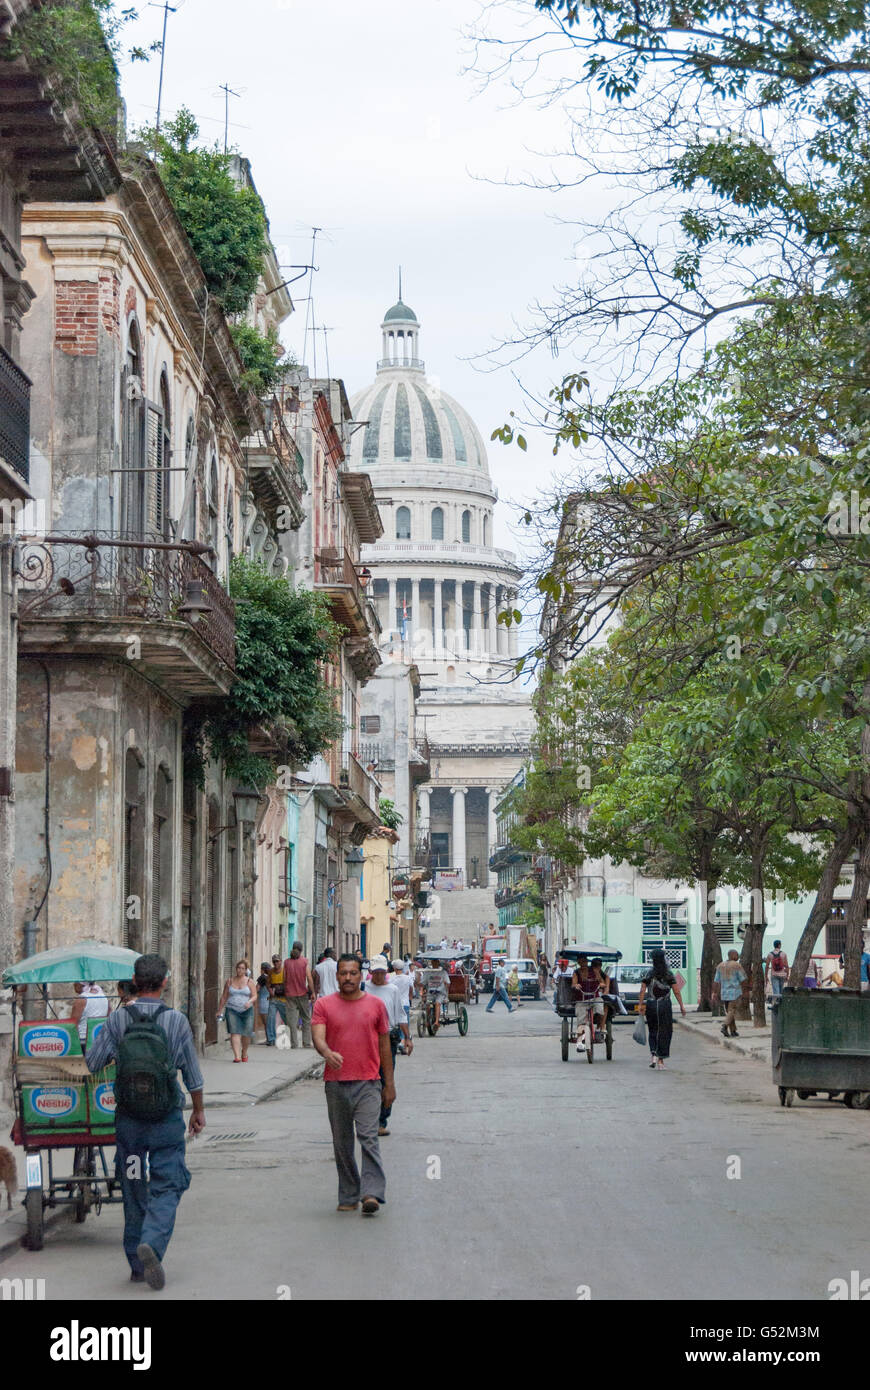 Cuba, Havana, view of the Capitolio from the street Teniente Rey - Stock Image